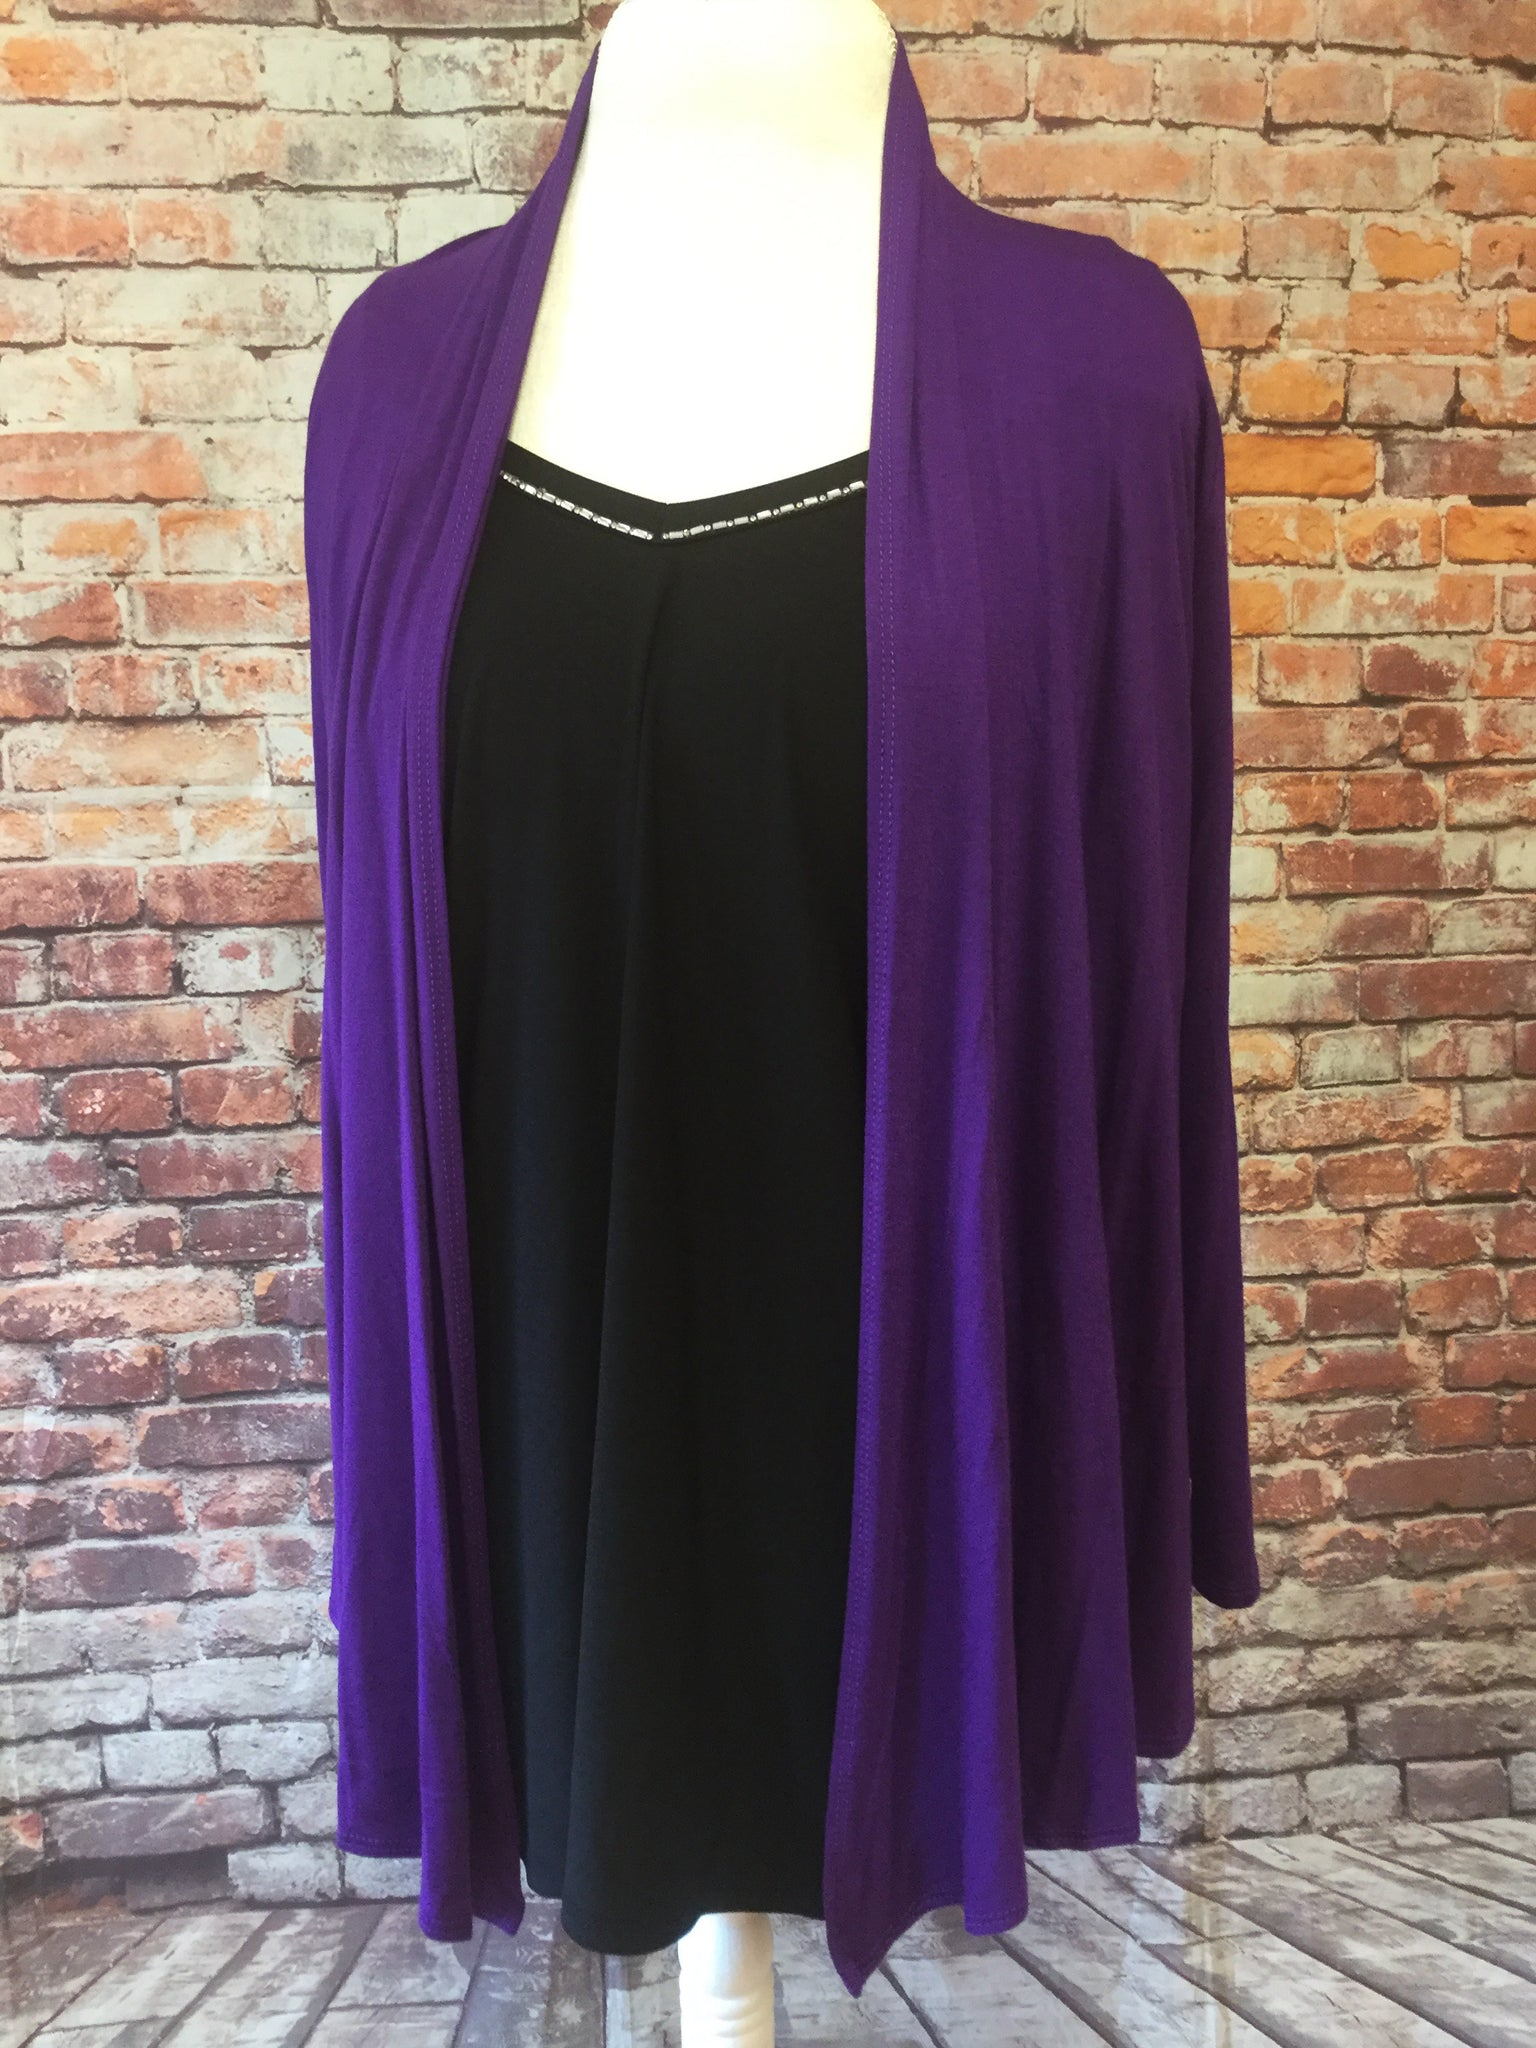 Waist Length Angled Front Purple Cardigan